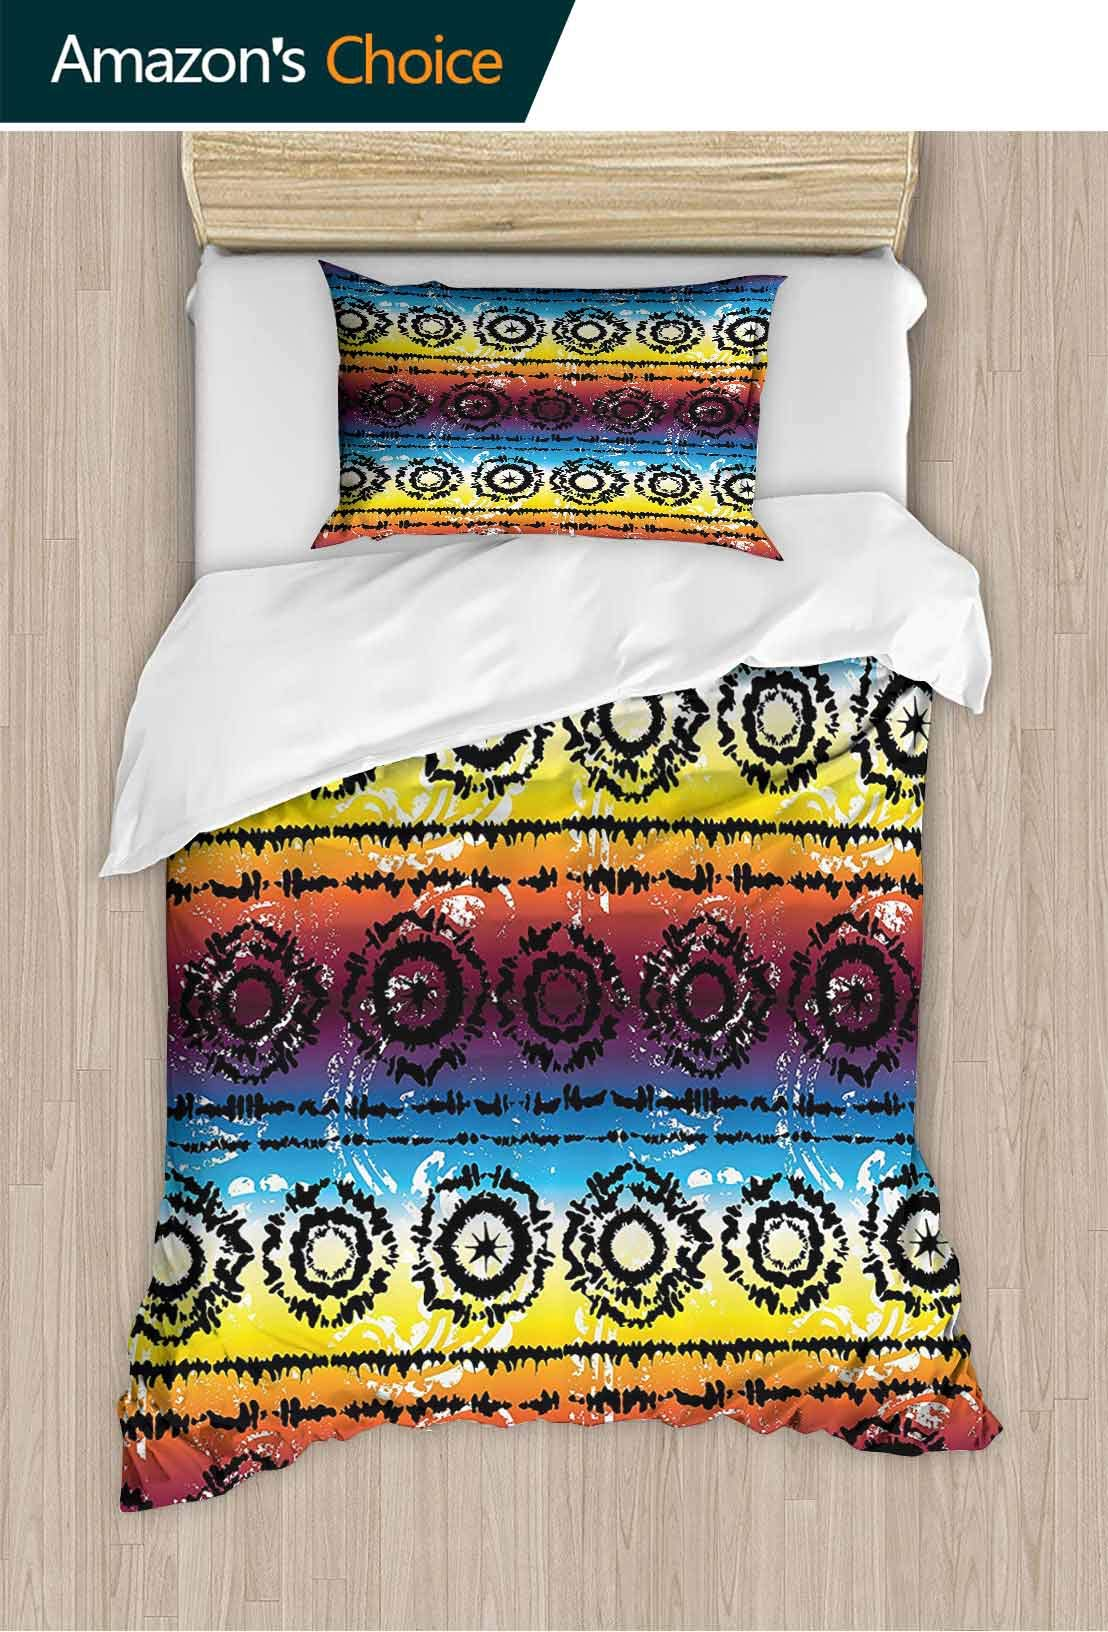 PRUNUSHOME Polyester Bedding Hippie Regular Rotary Circles Rainbow Color Striped Hazy Grungy Artisan Ultra Soft Hypoallergenic Full